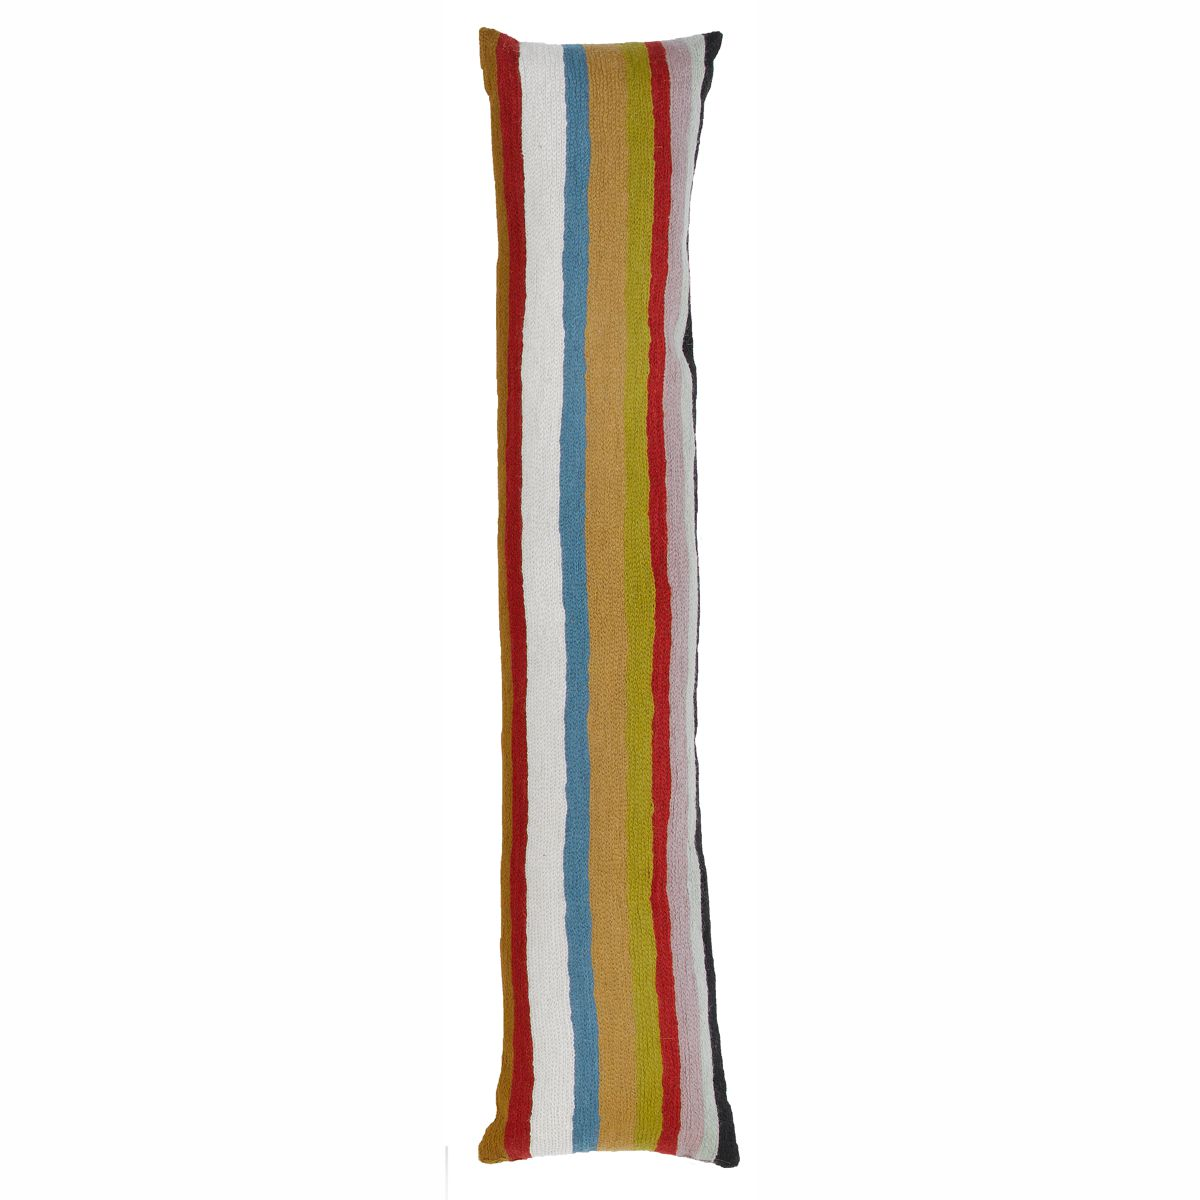 Zaida Multi Colour Long Stripe Draught Excluder 90cm x 20cm Diameter